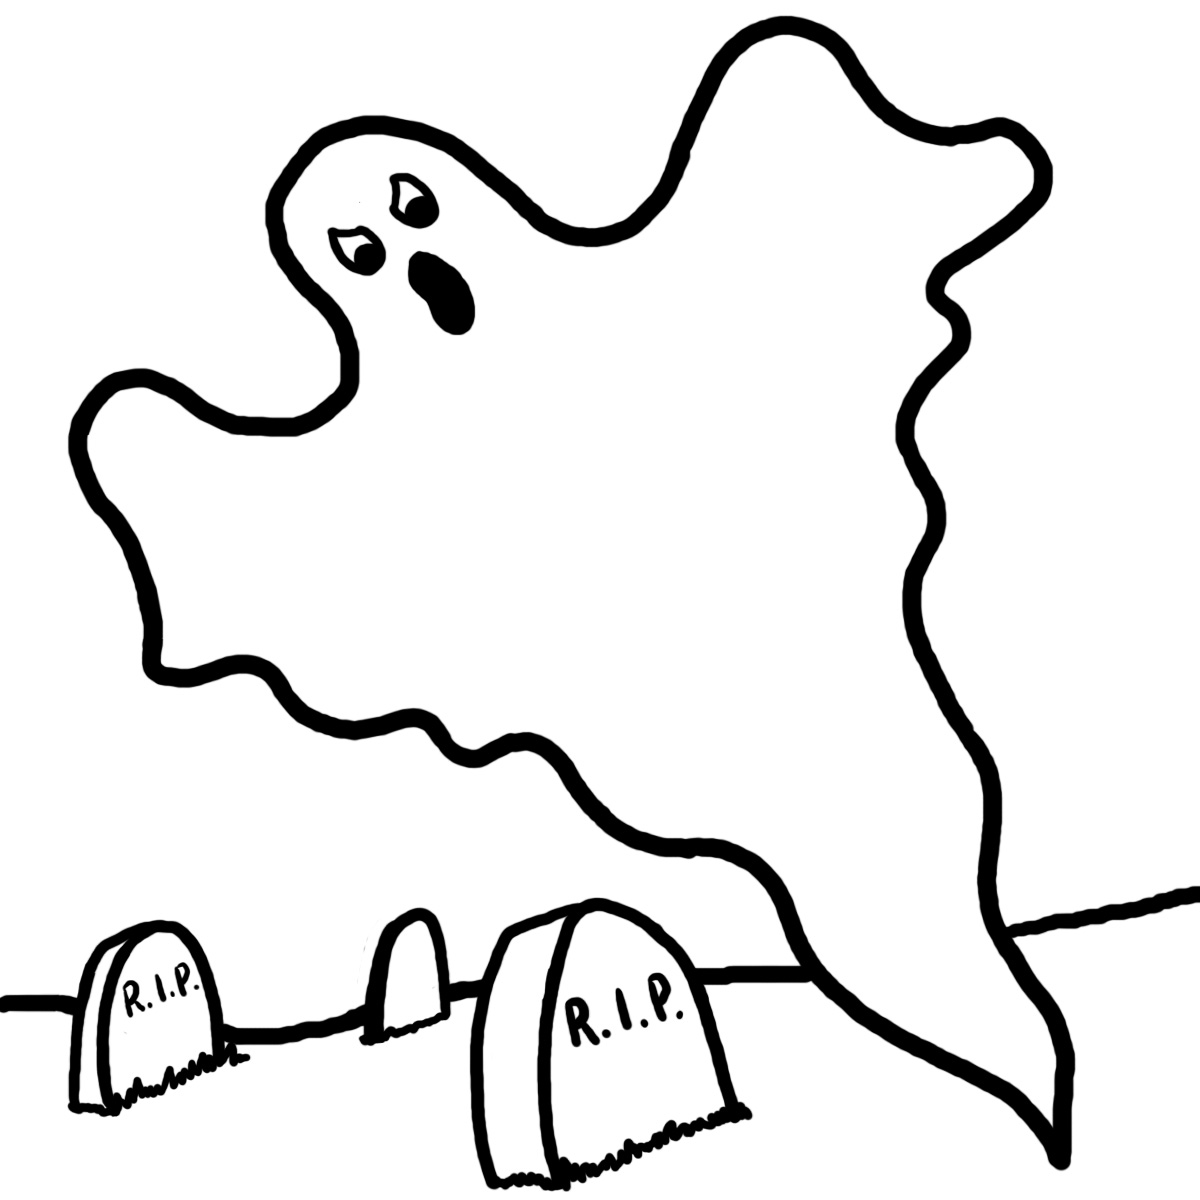 Haunted clipart cute ghost Clipart Clipart nigger%20clipart Free Images